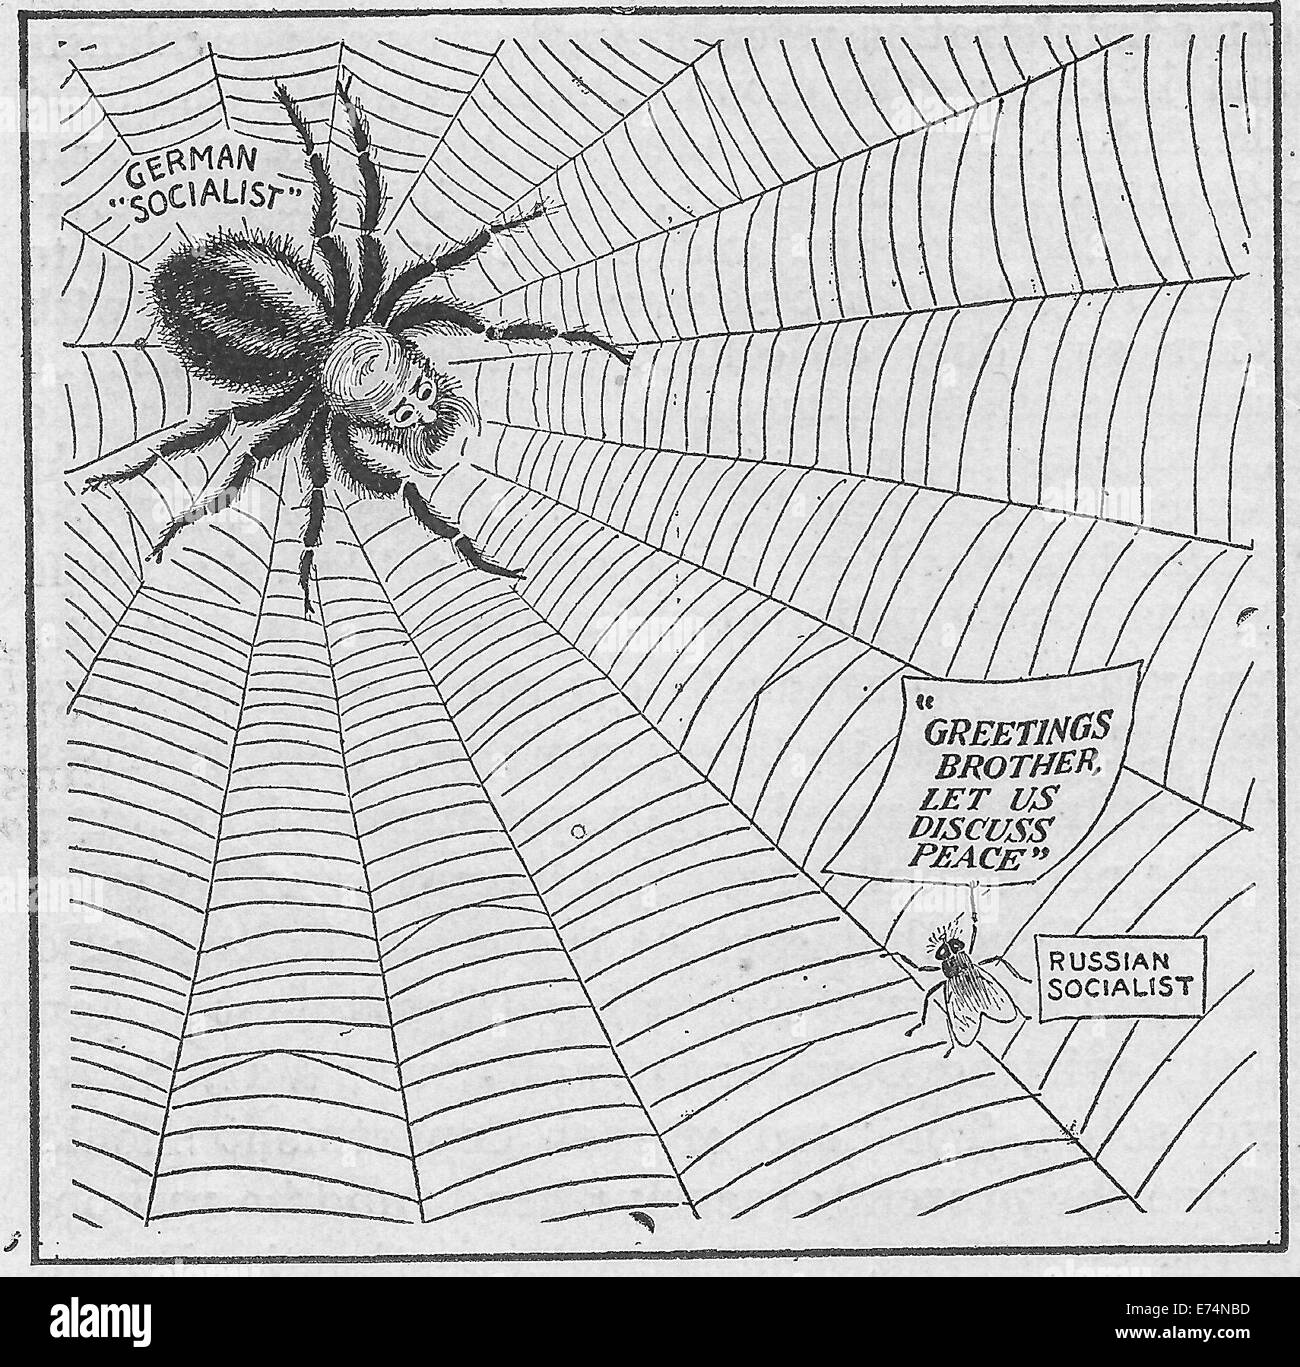 World war i political cartoon showing german socialists as a spider world war i political cartoon showing german socialists as a spider and russian socialists as a fly the fly is saying greetings brother let us discuss m4hsunfo